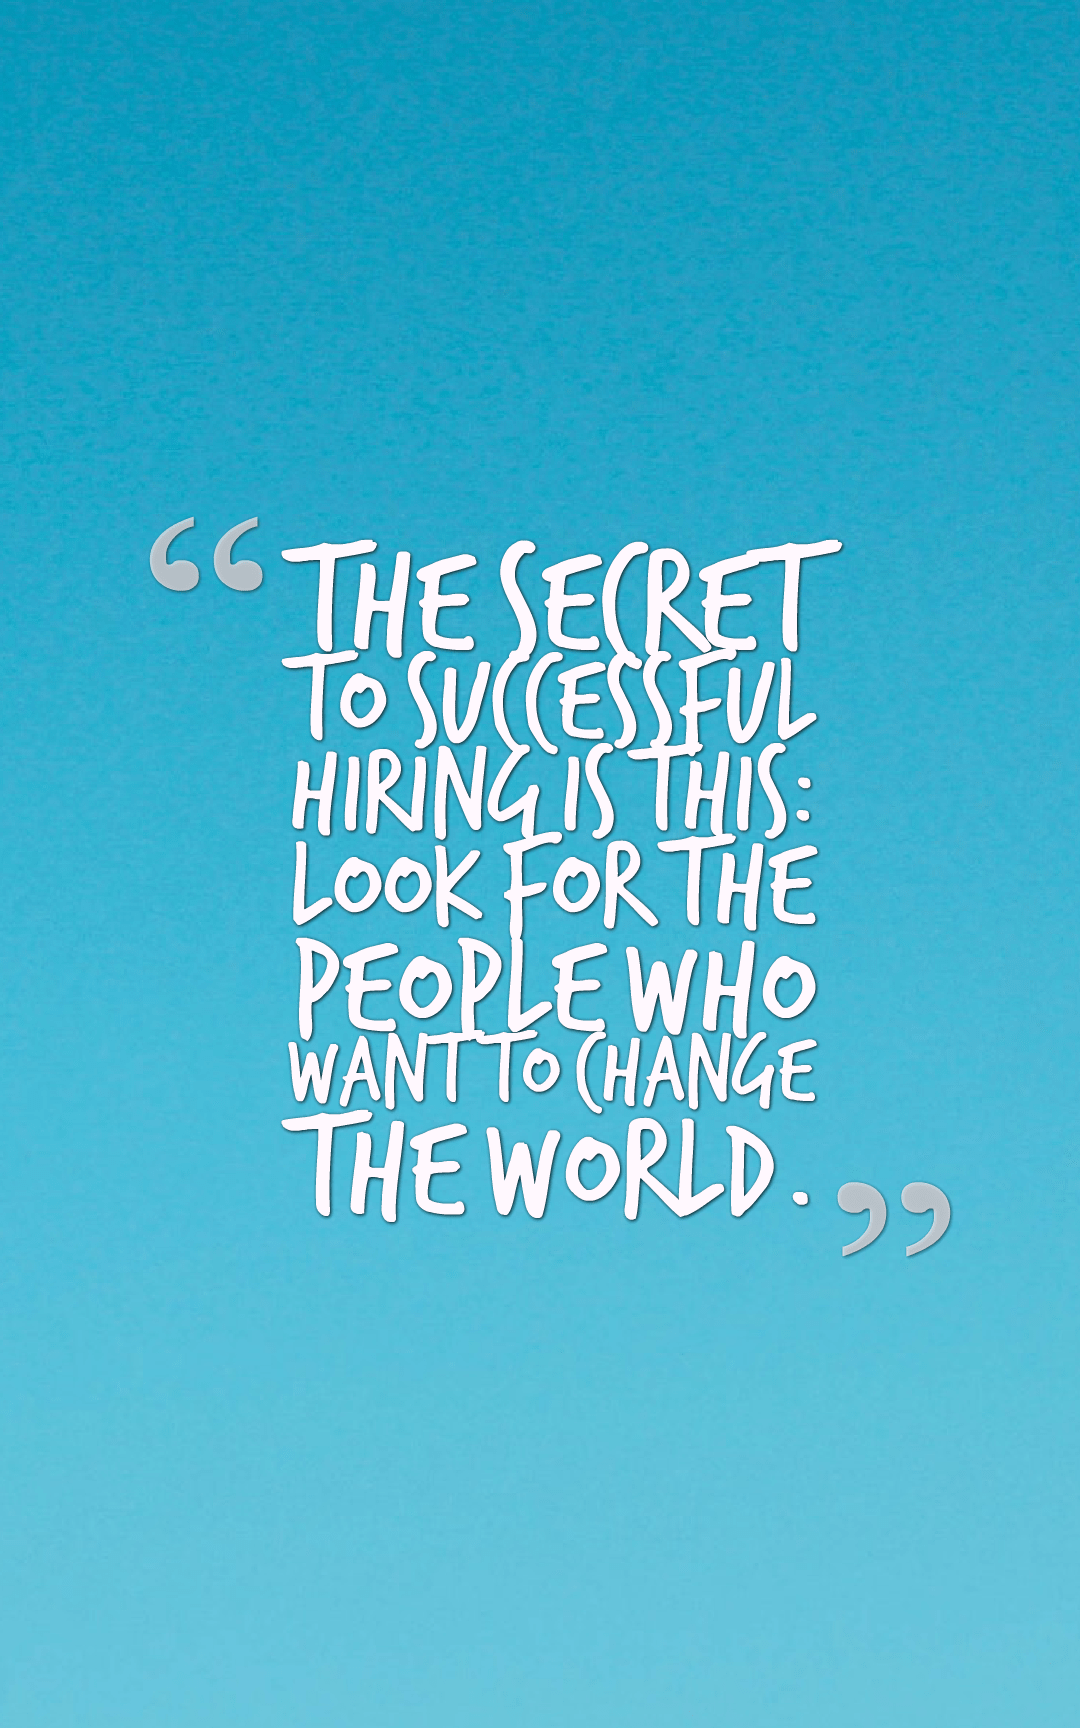 Quotes image of The secret to successful hiring is this: look for the people who want to change the world.